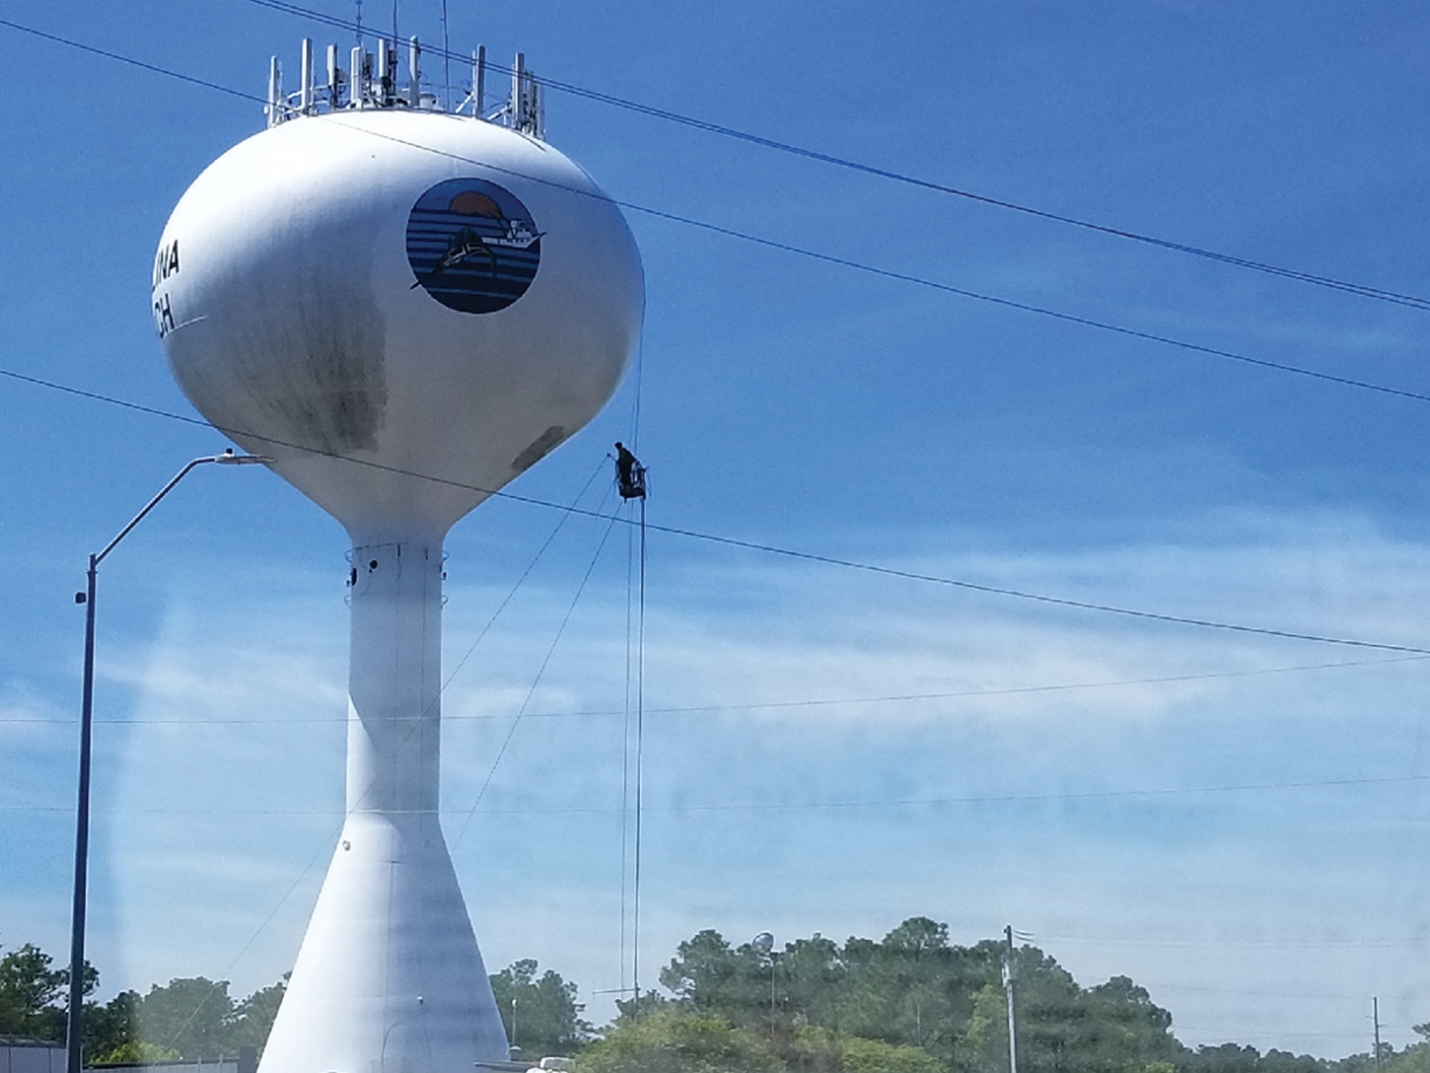 Water Tower Cleaned For Summer Season